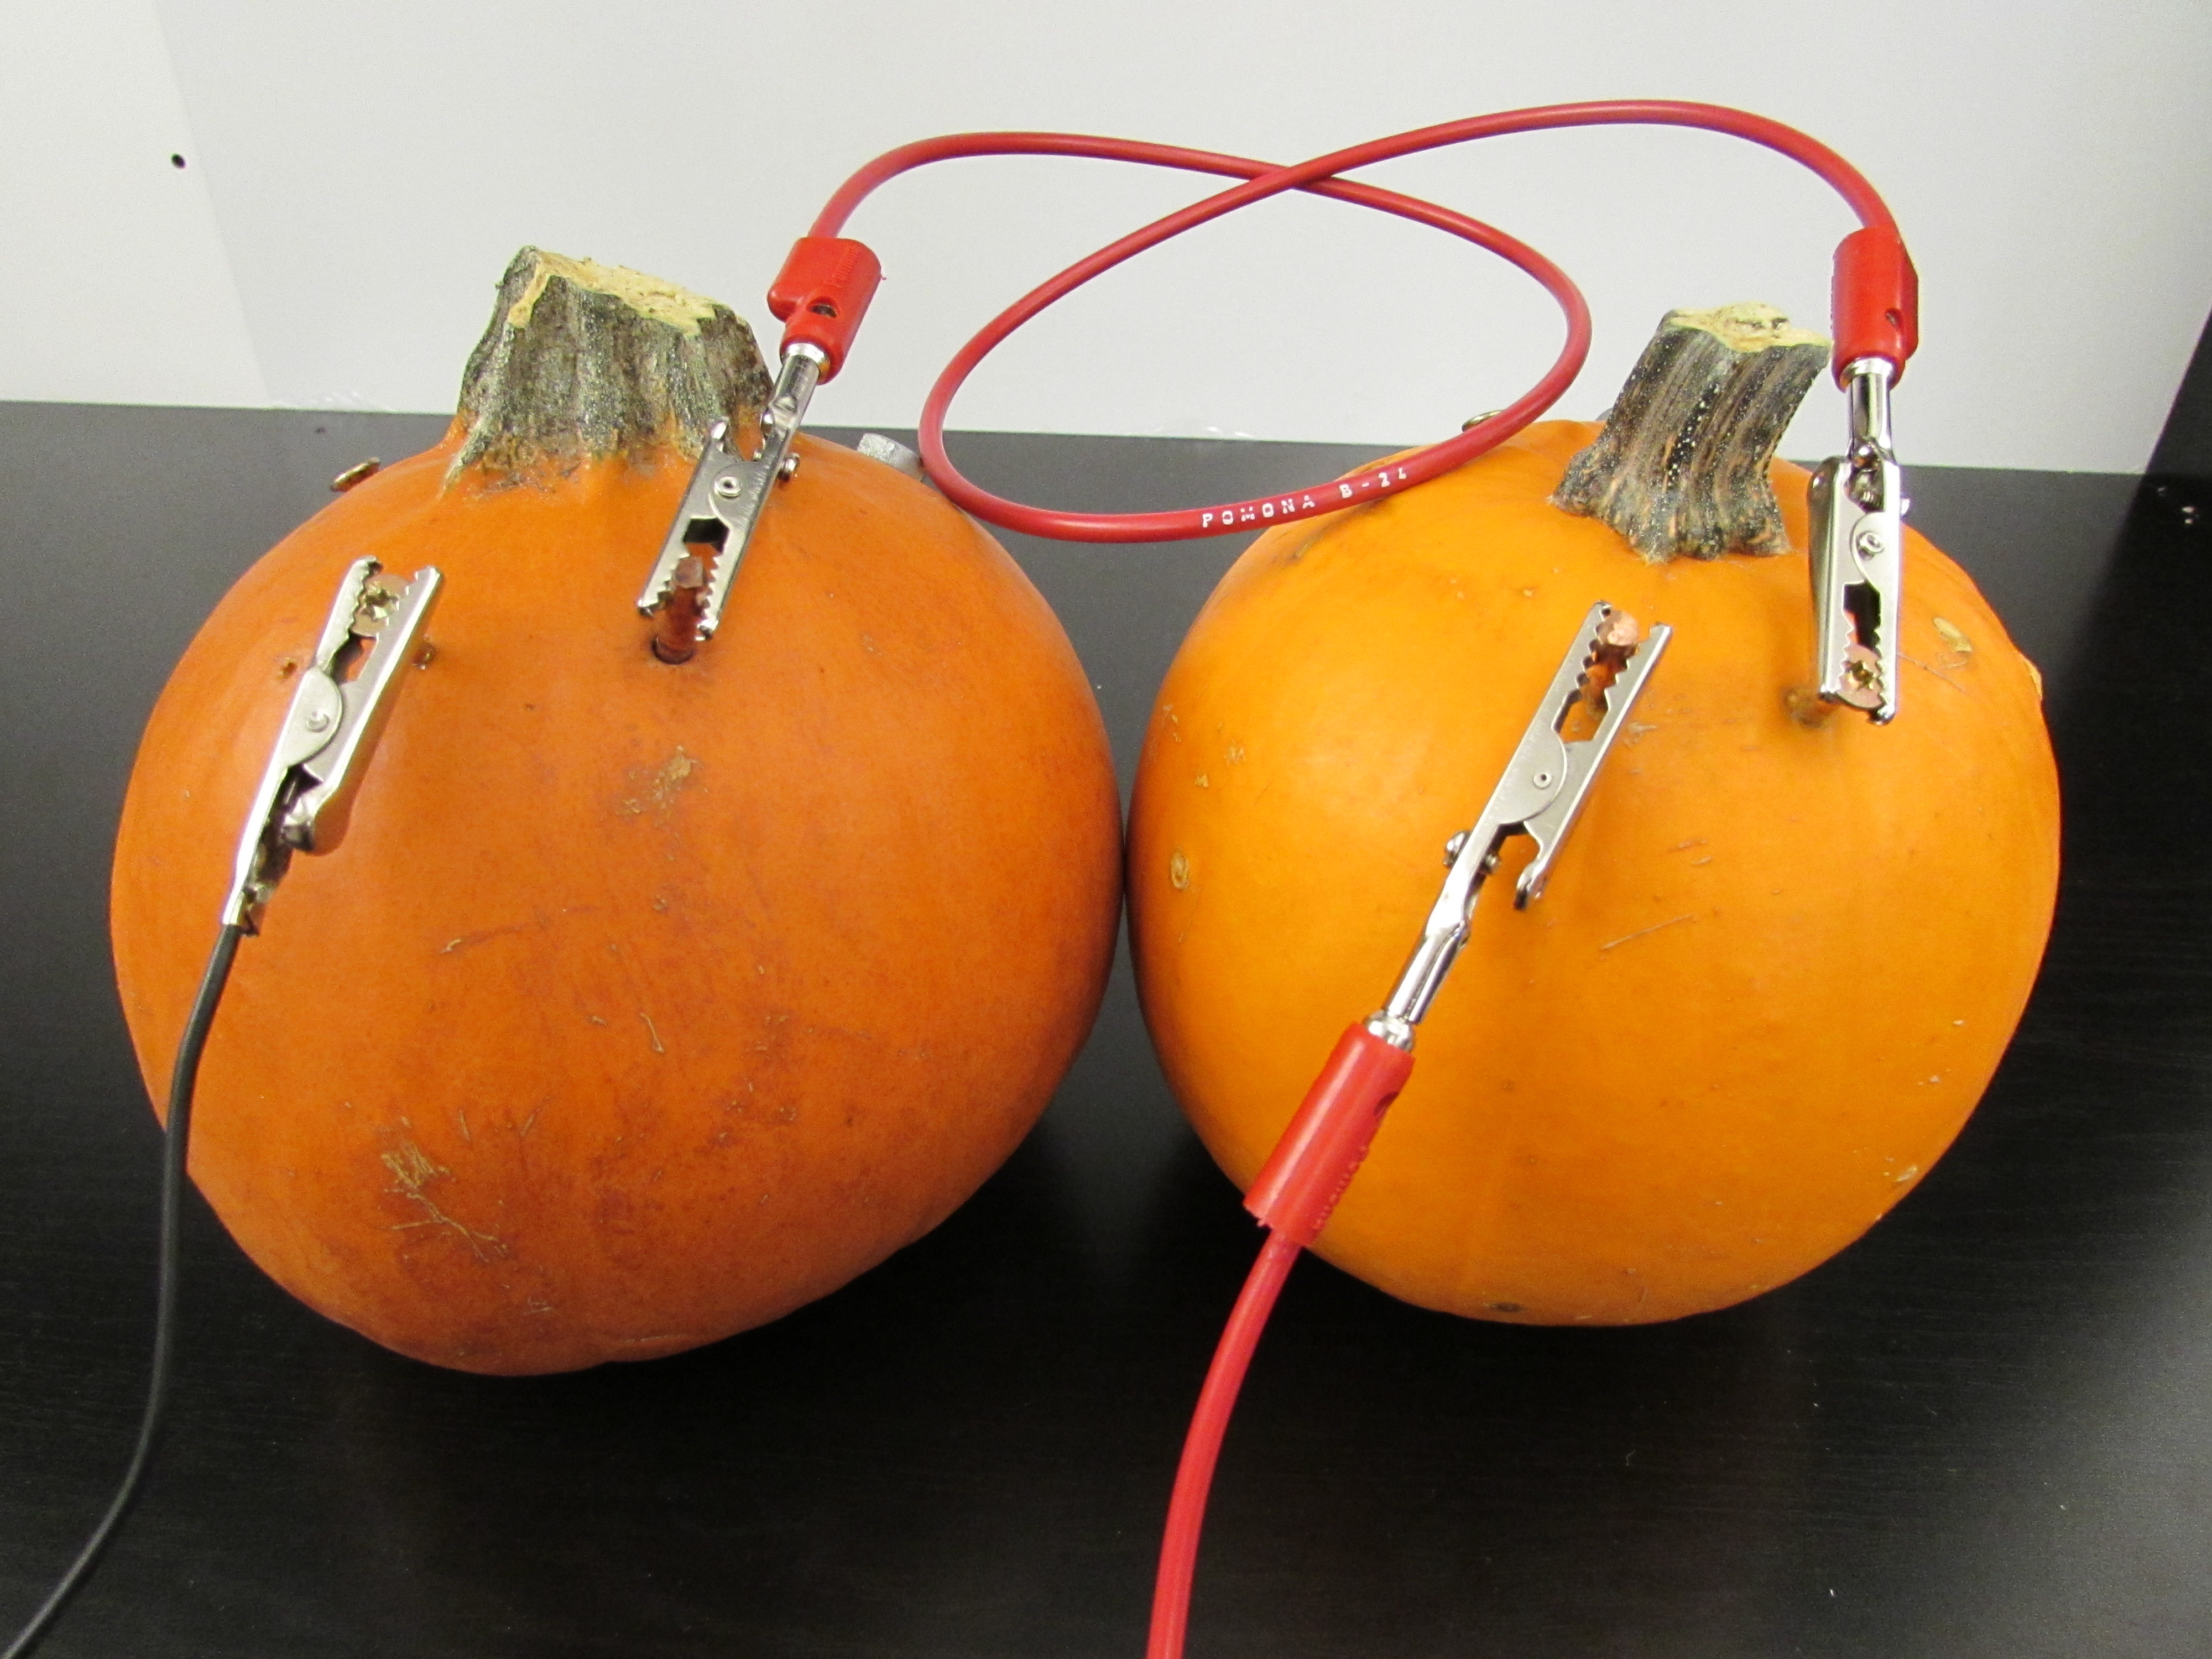 Picture of Connect Power Wires to the Pumpkins